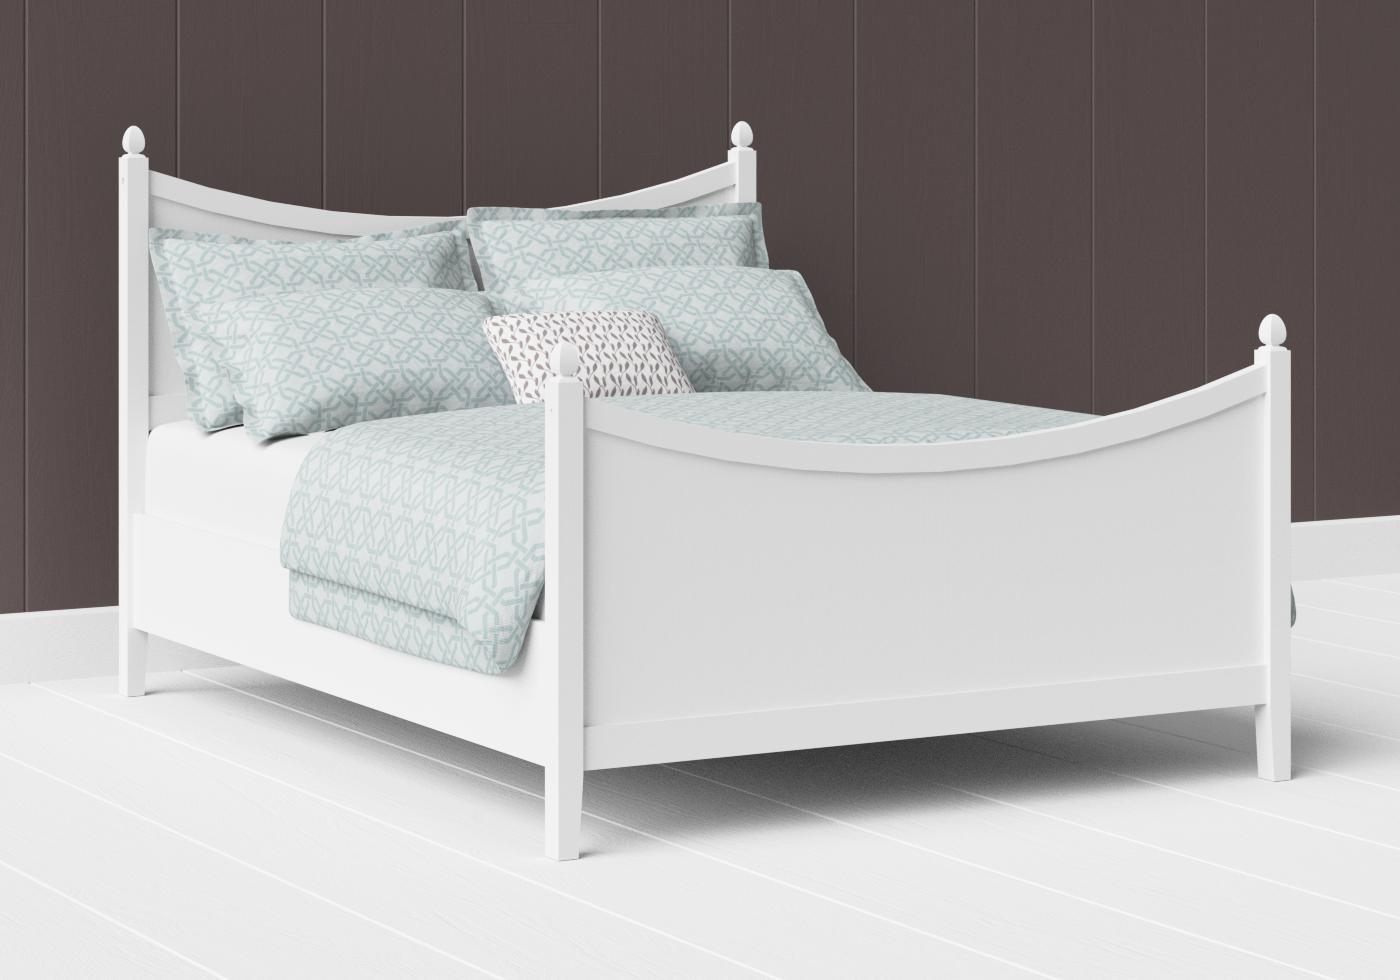 Blake painted wood bed in satin white